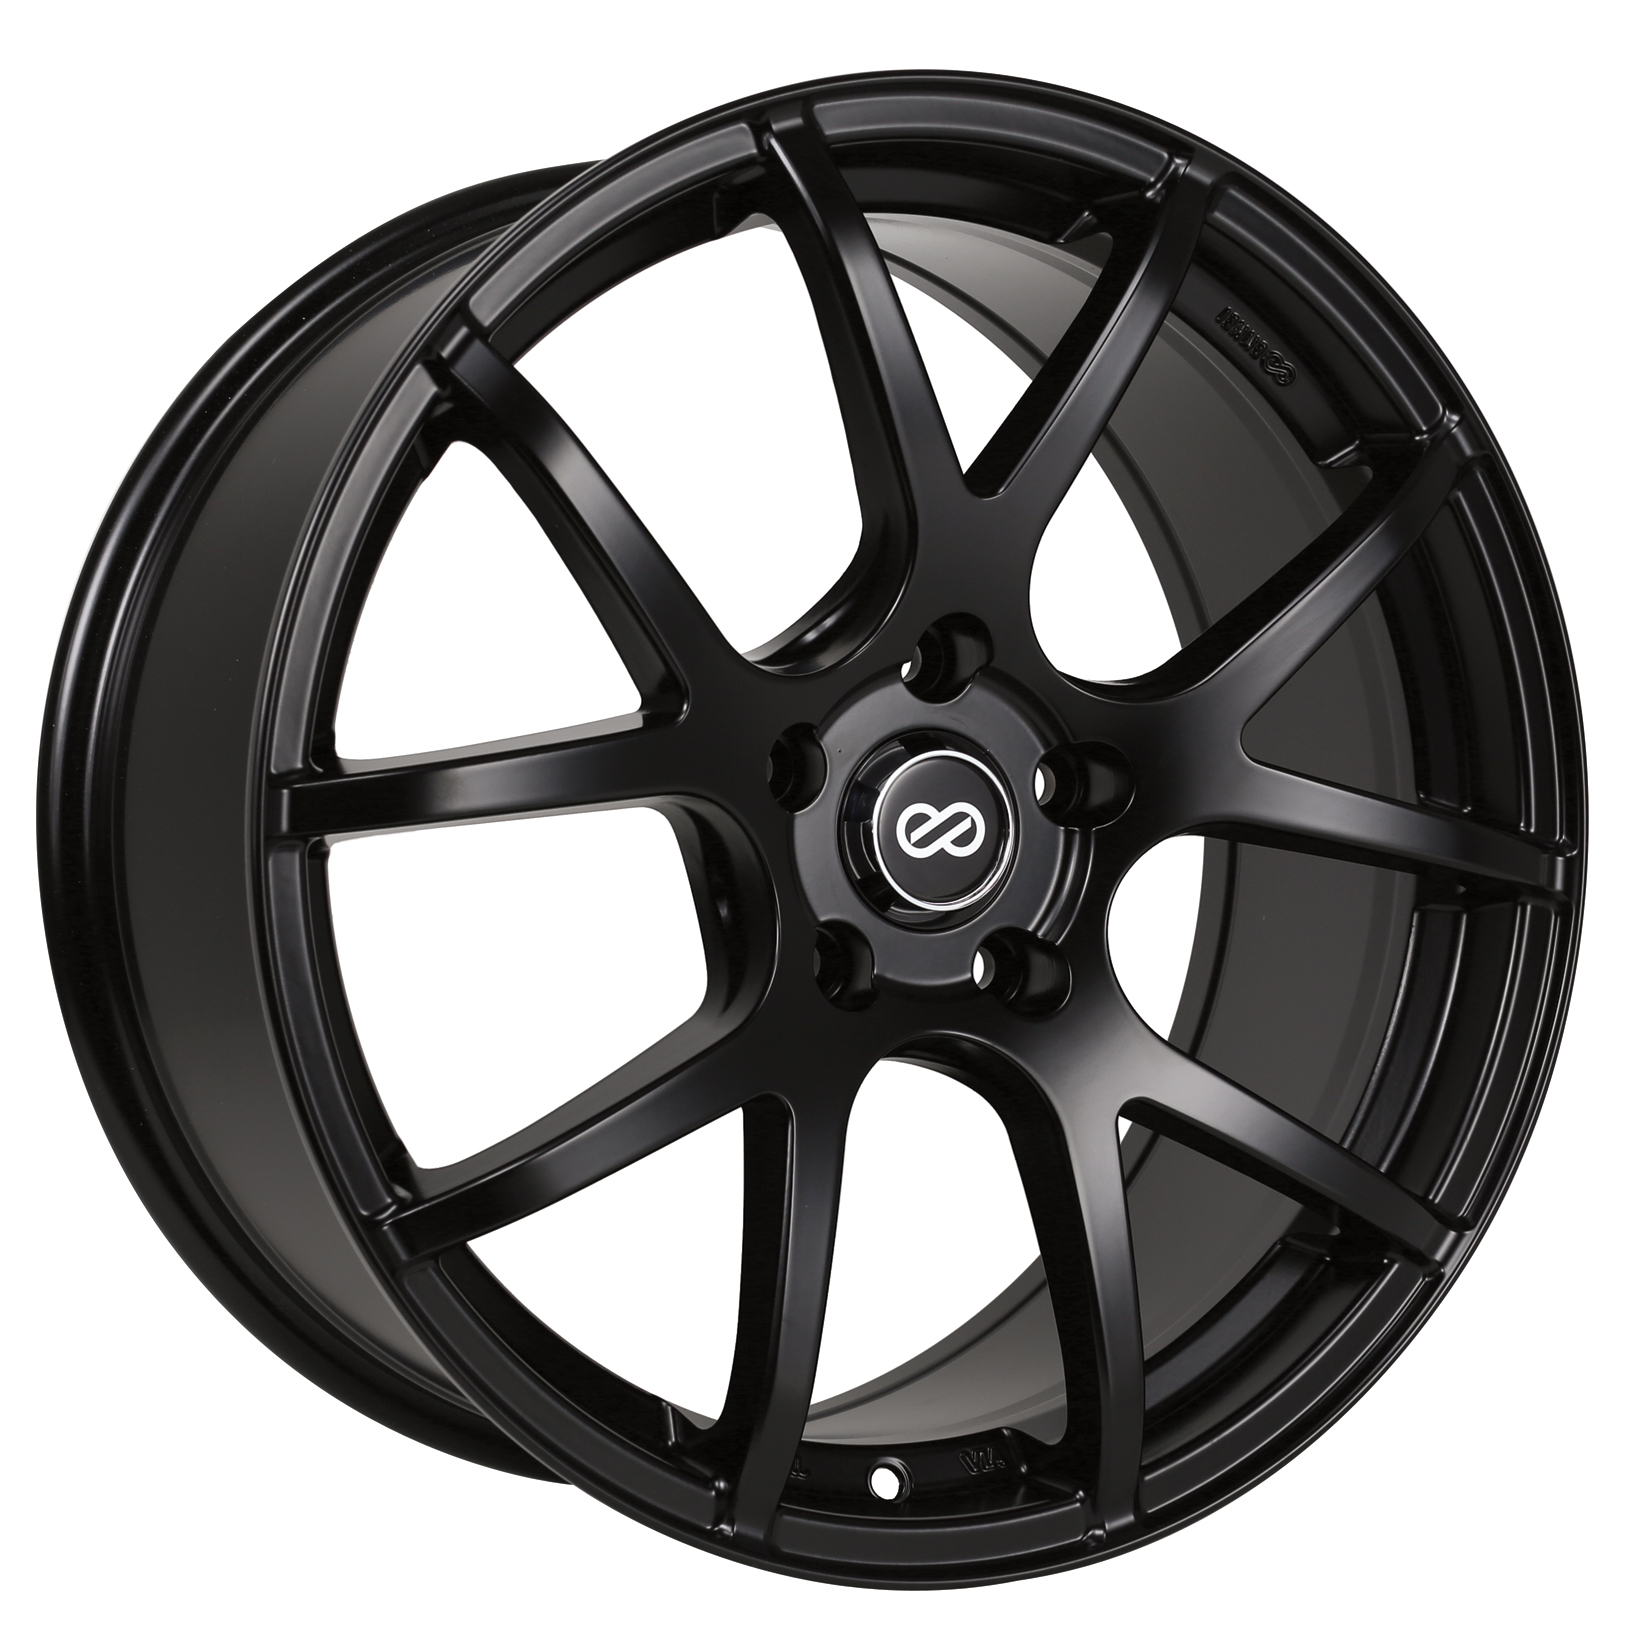 Enkei M52 Black Wheel: 17x7.5 +45